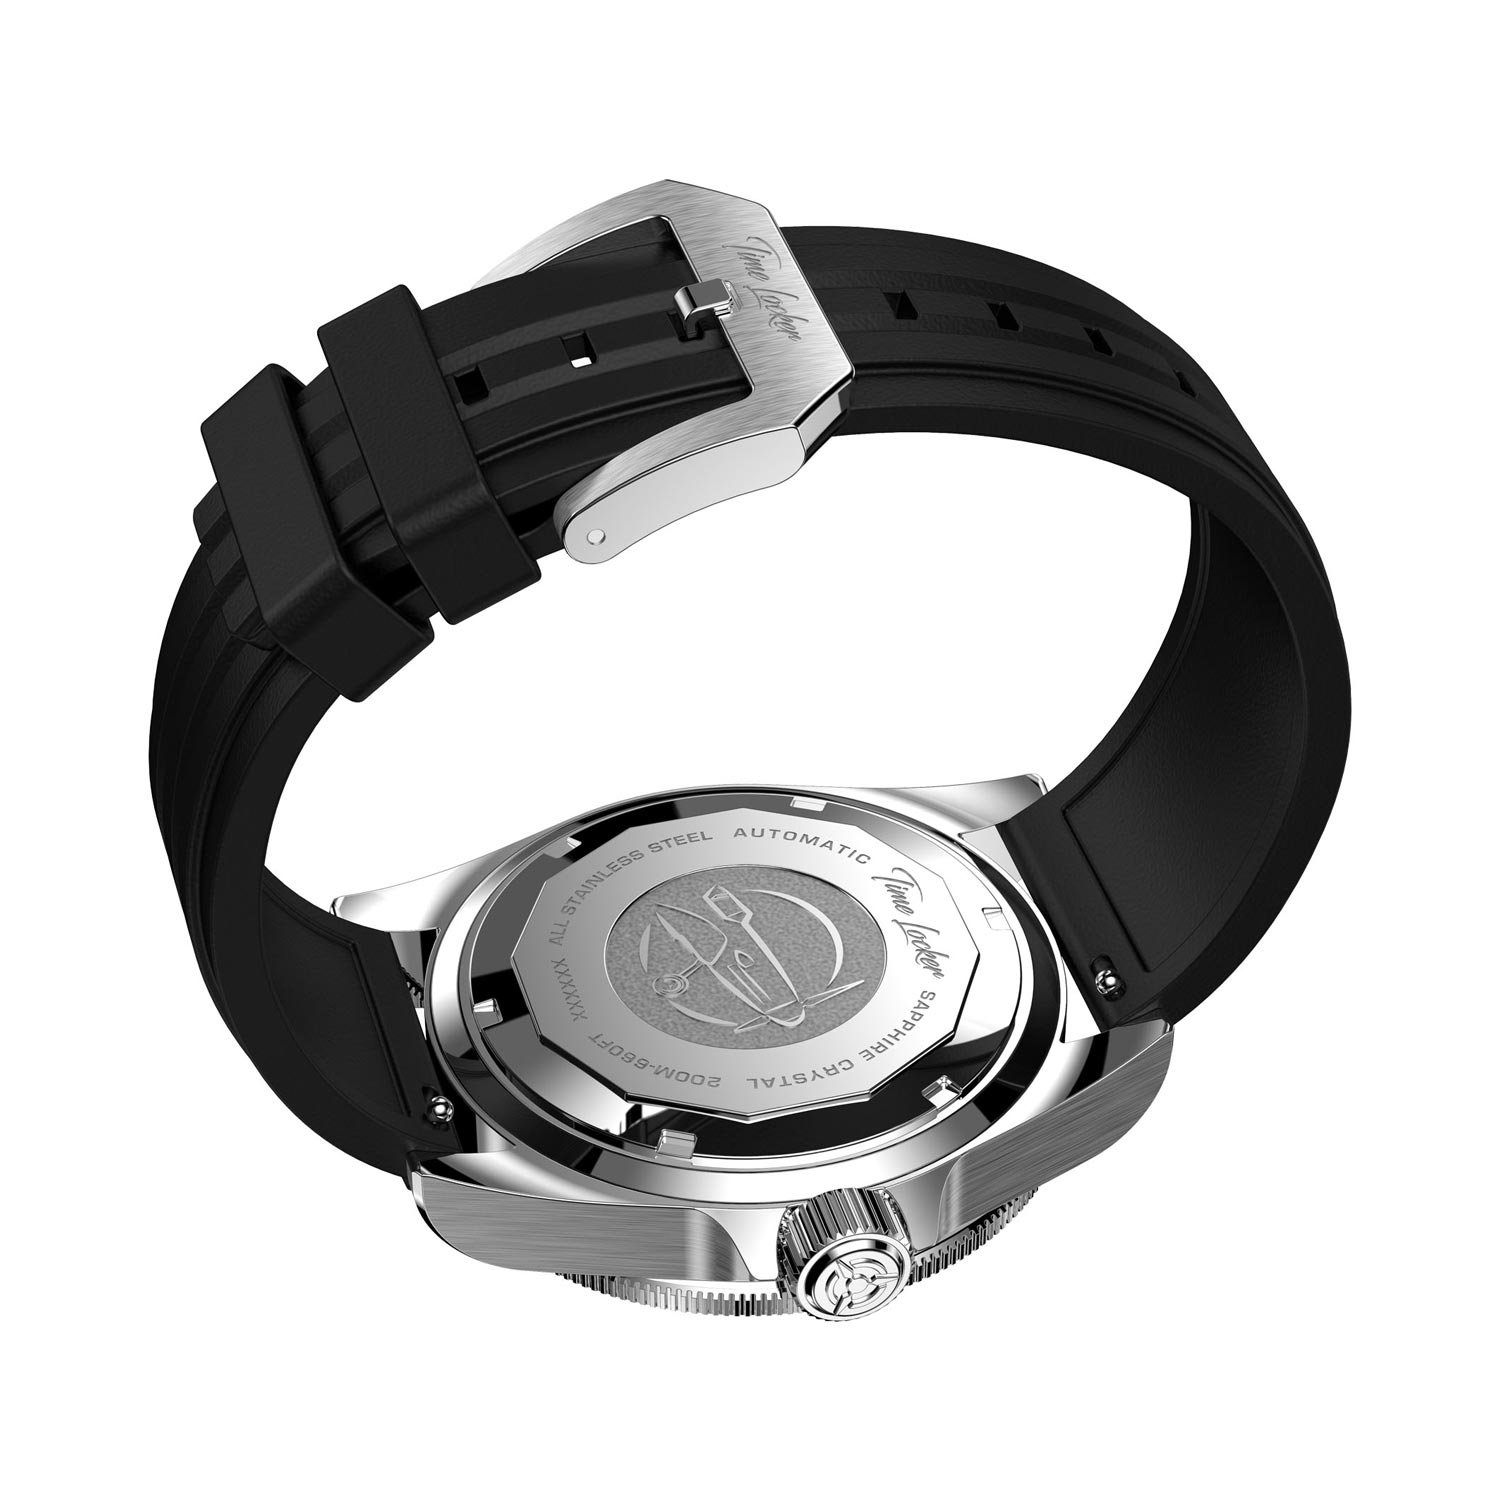 Time Locker dive watch Kouriles with black dial | rubber strap | case view